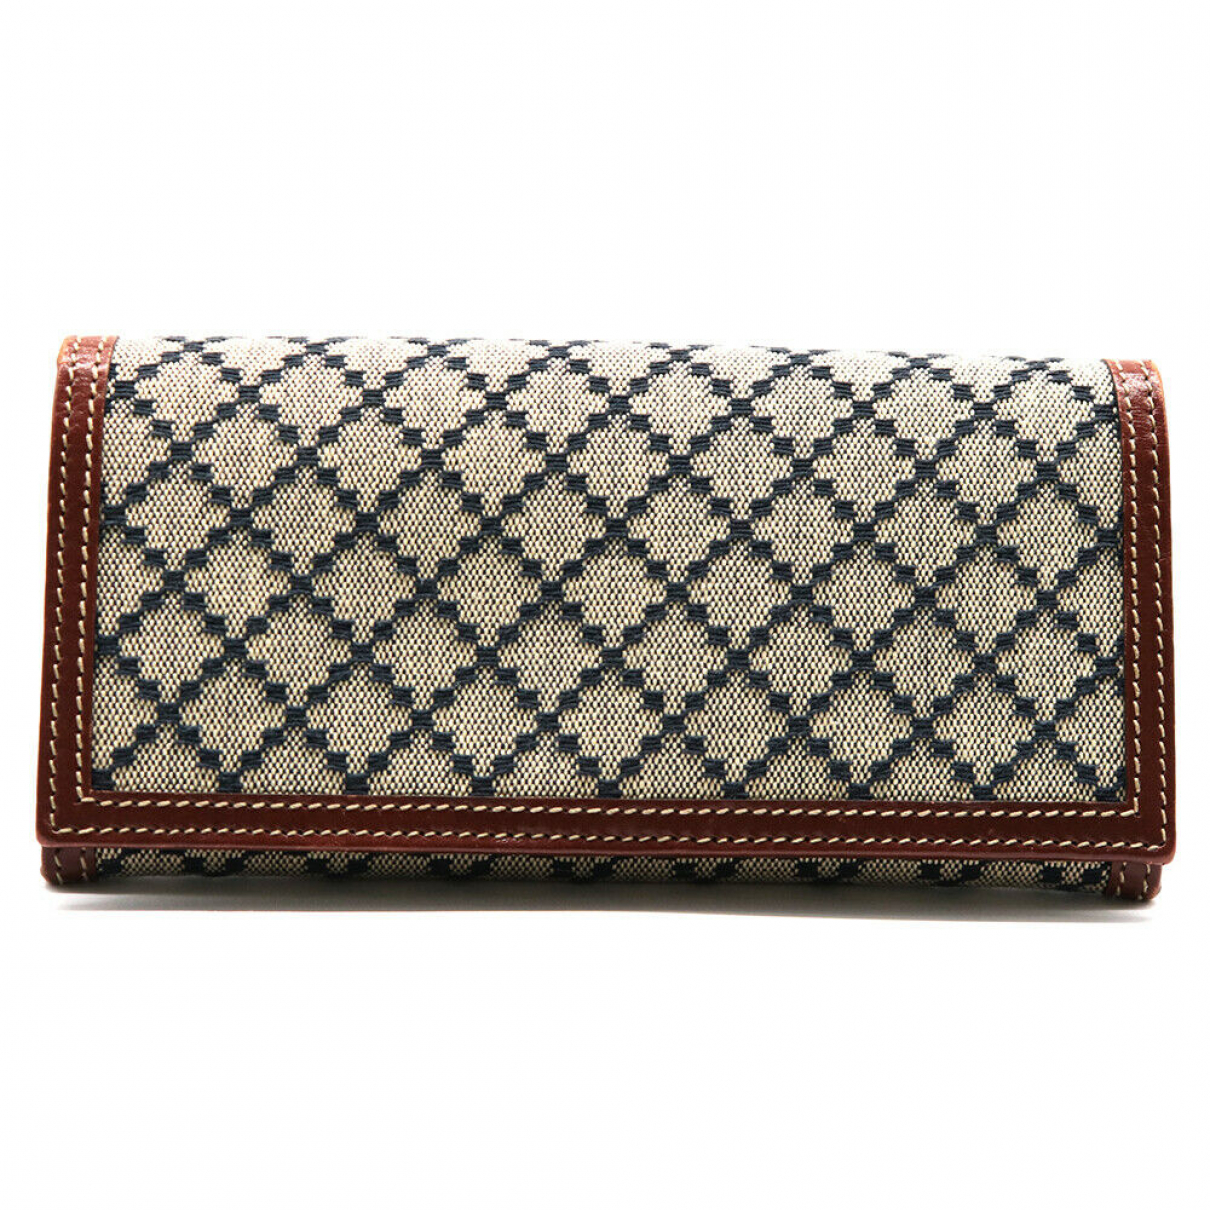 Gucci N Leather Purses, wallet & cases for Women N